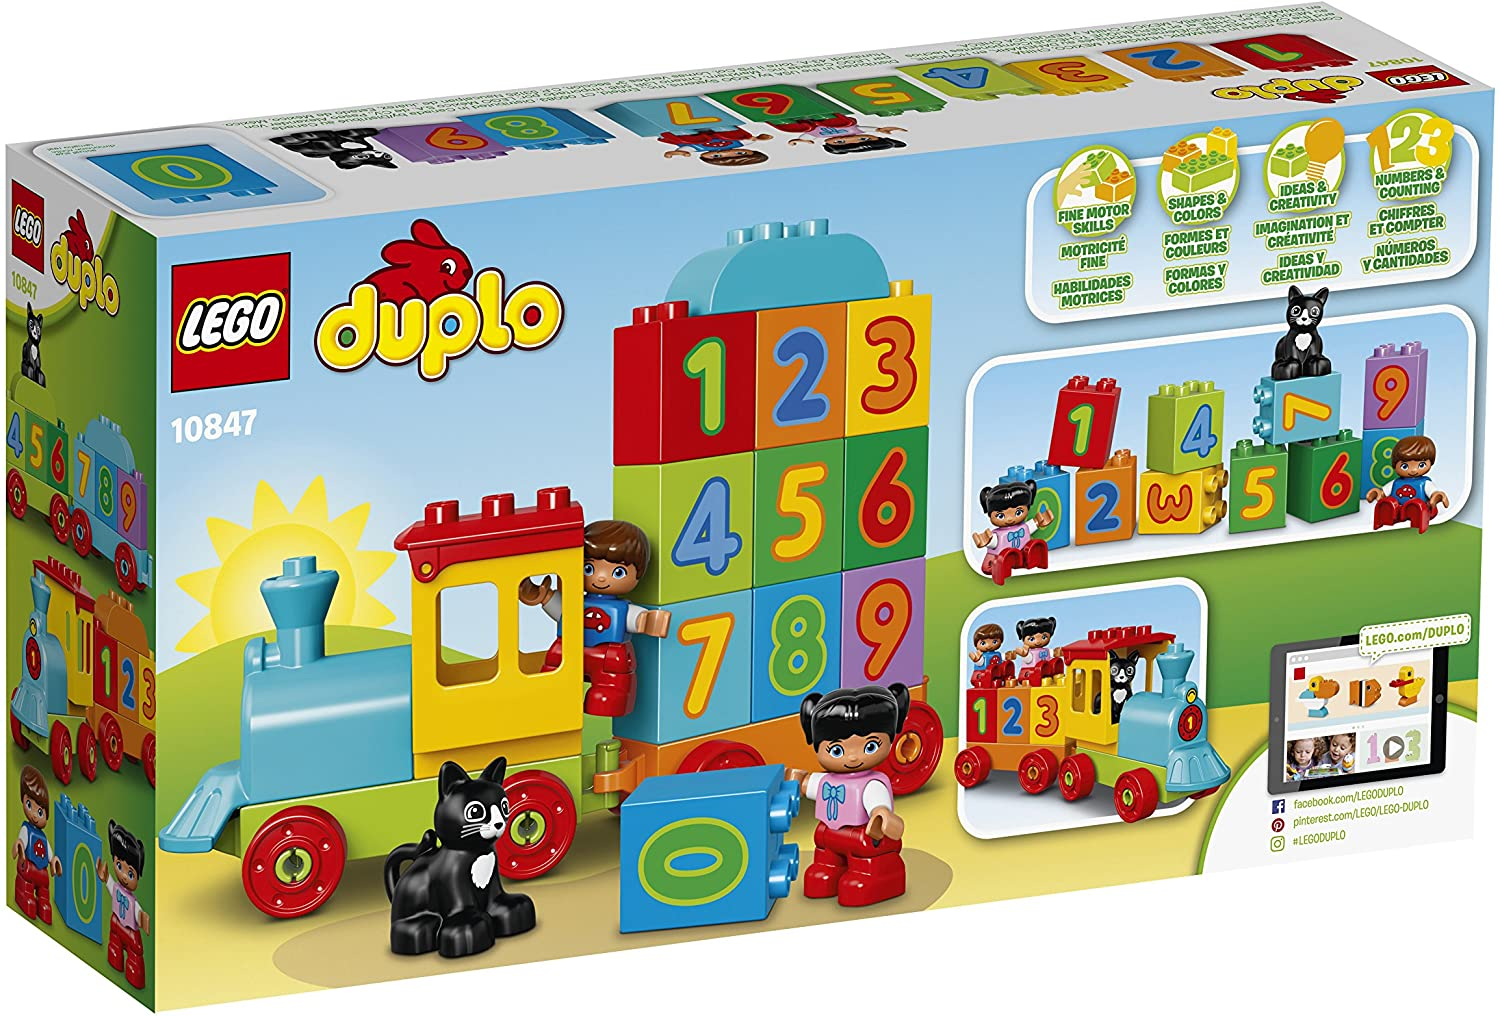 LEGO 10847 Duplo My First Number Train Toy with Number Decorated Bricks Early